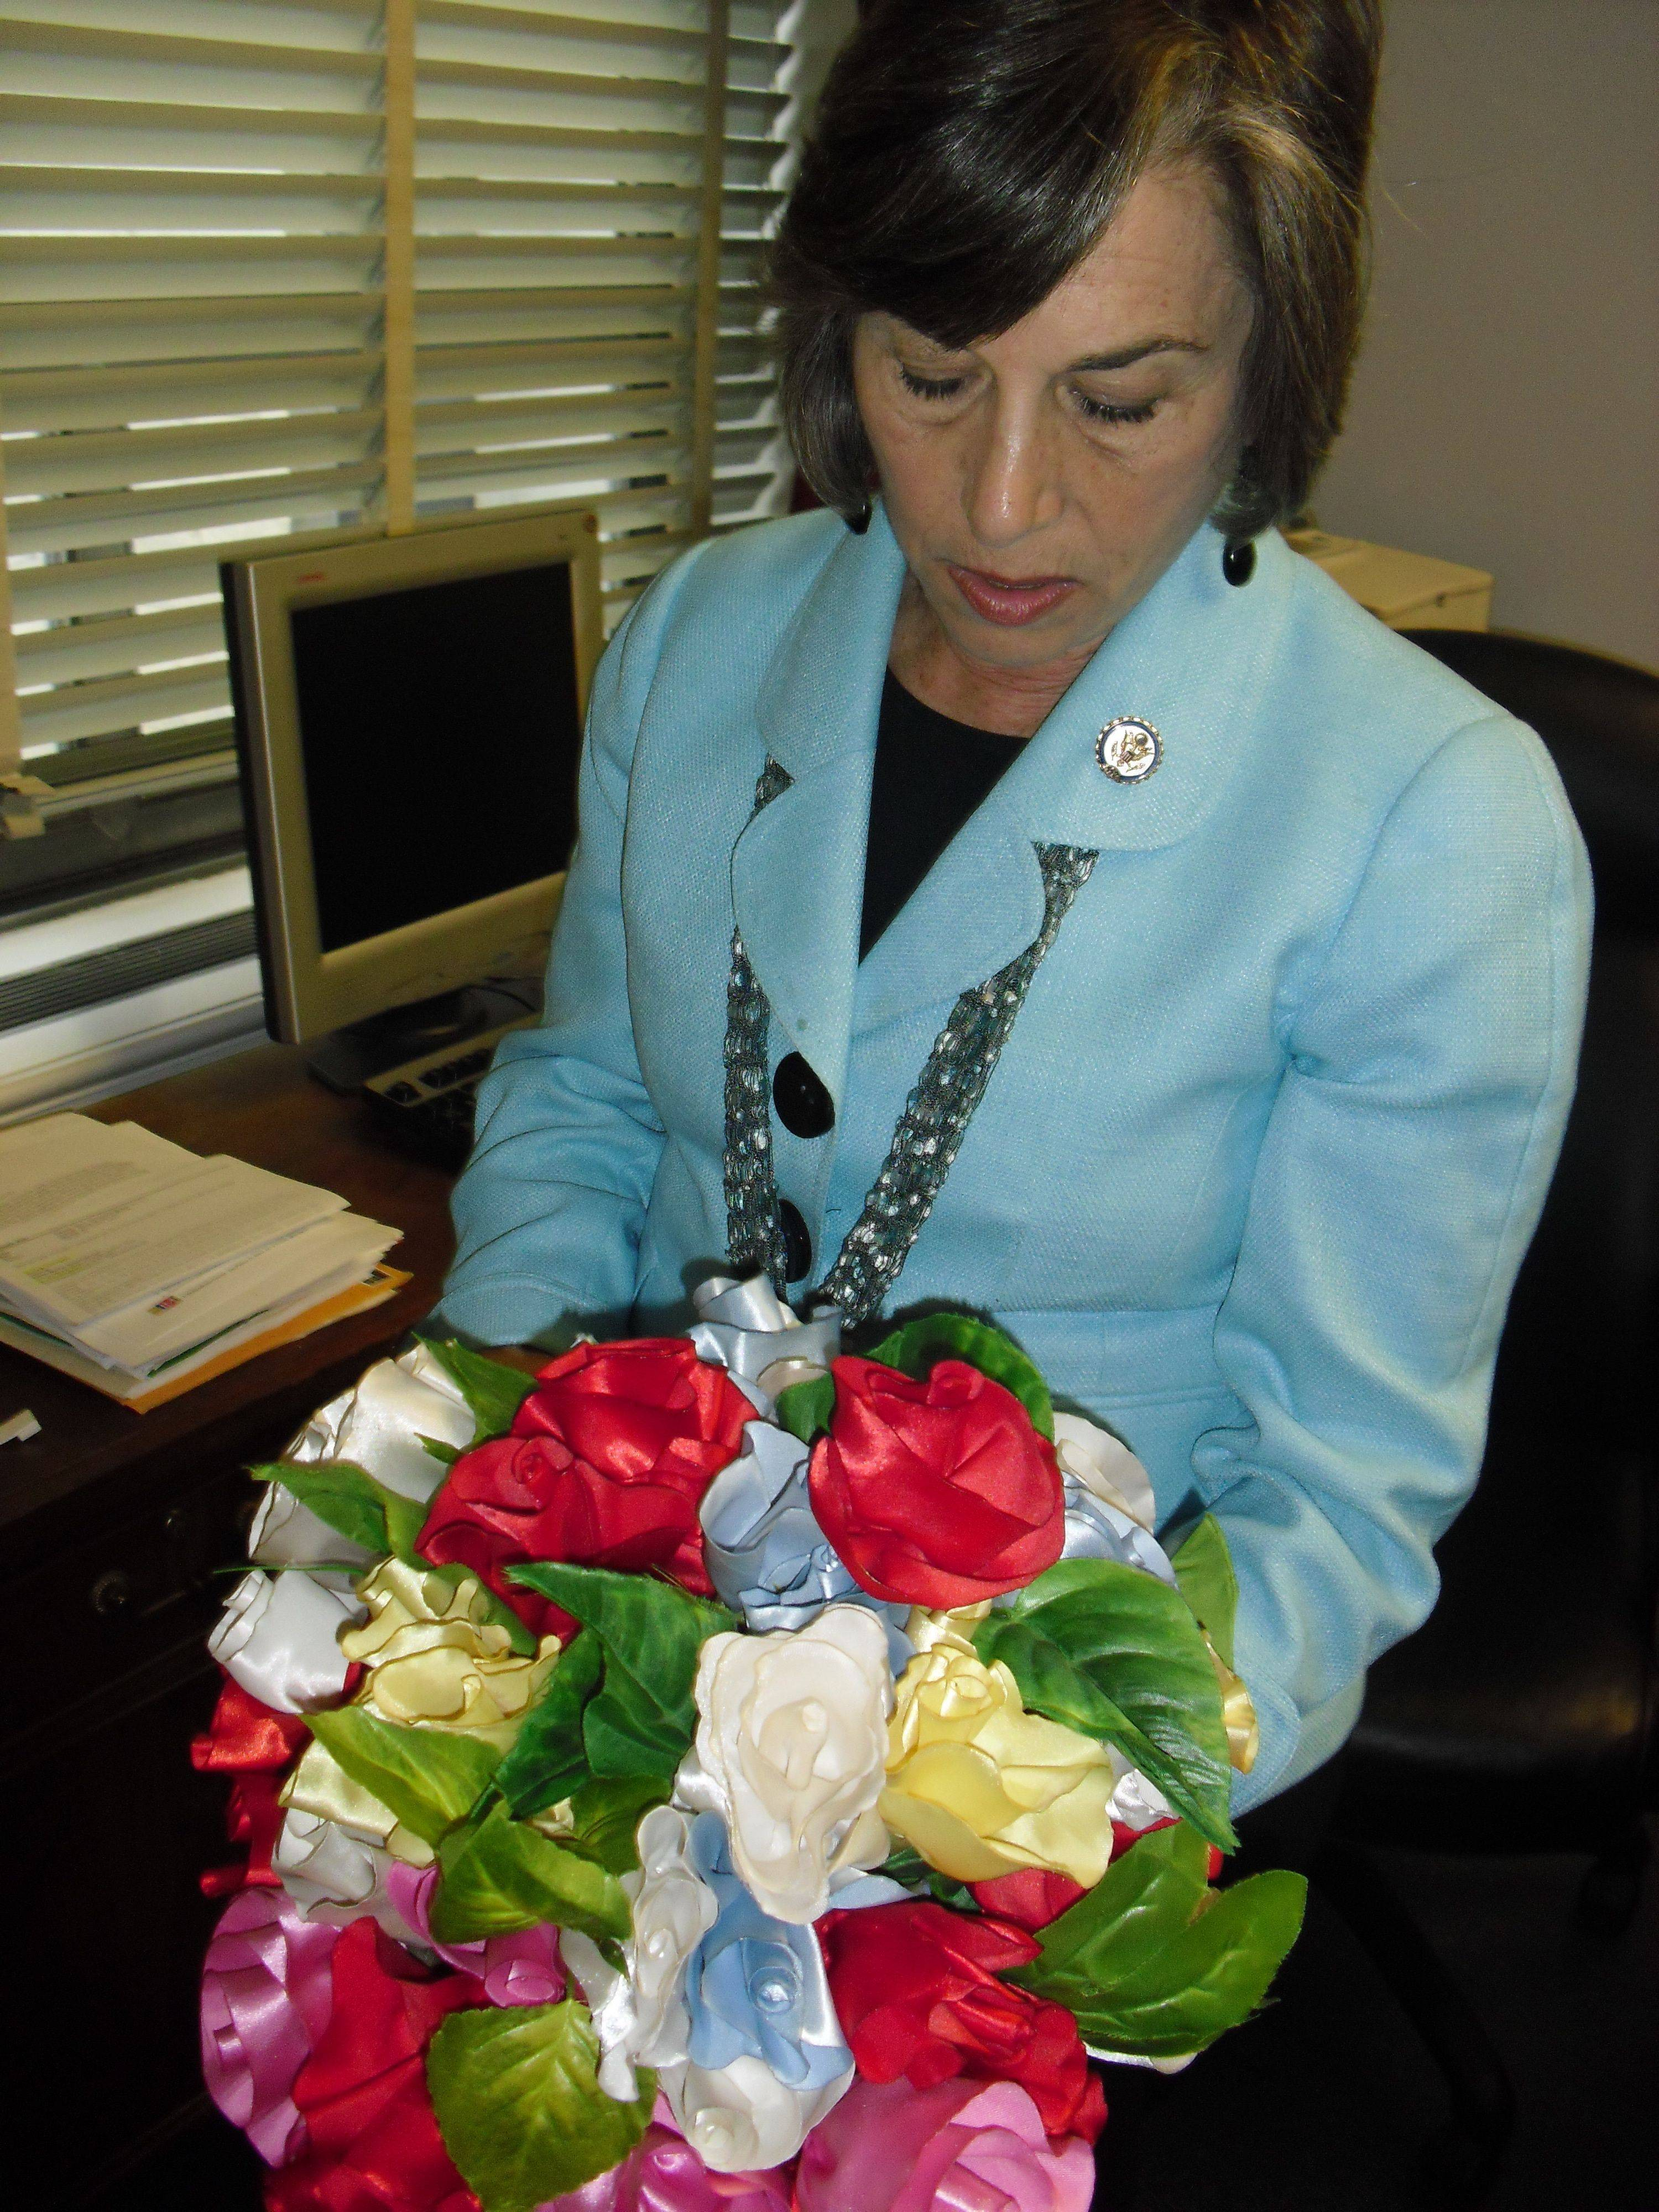 Evanston Democrat Rep. Jan Schakowsky admires a bouquet of handmade flowers given to her on a trip to the Democratic Republic of Congo.